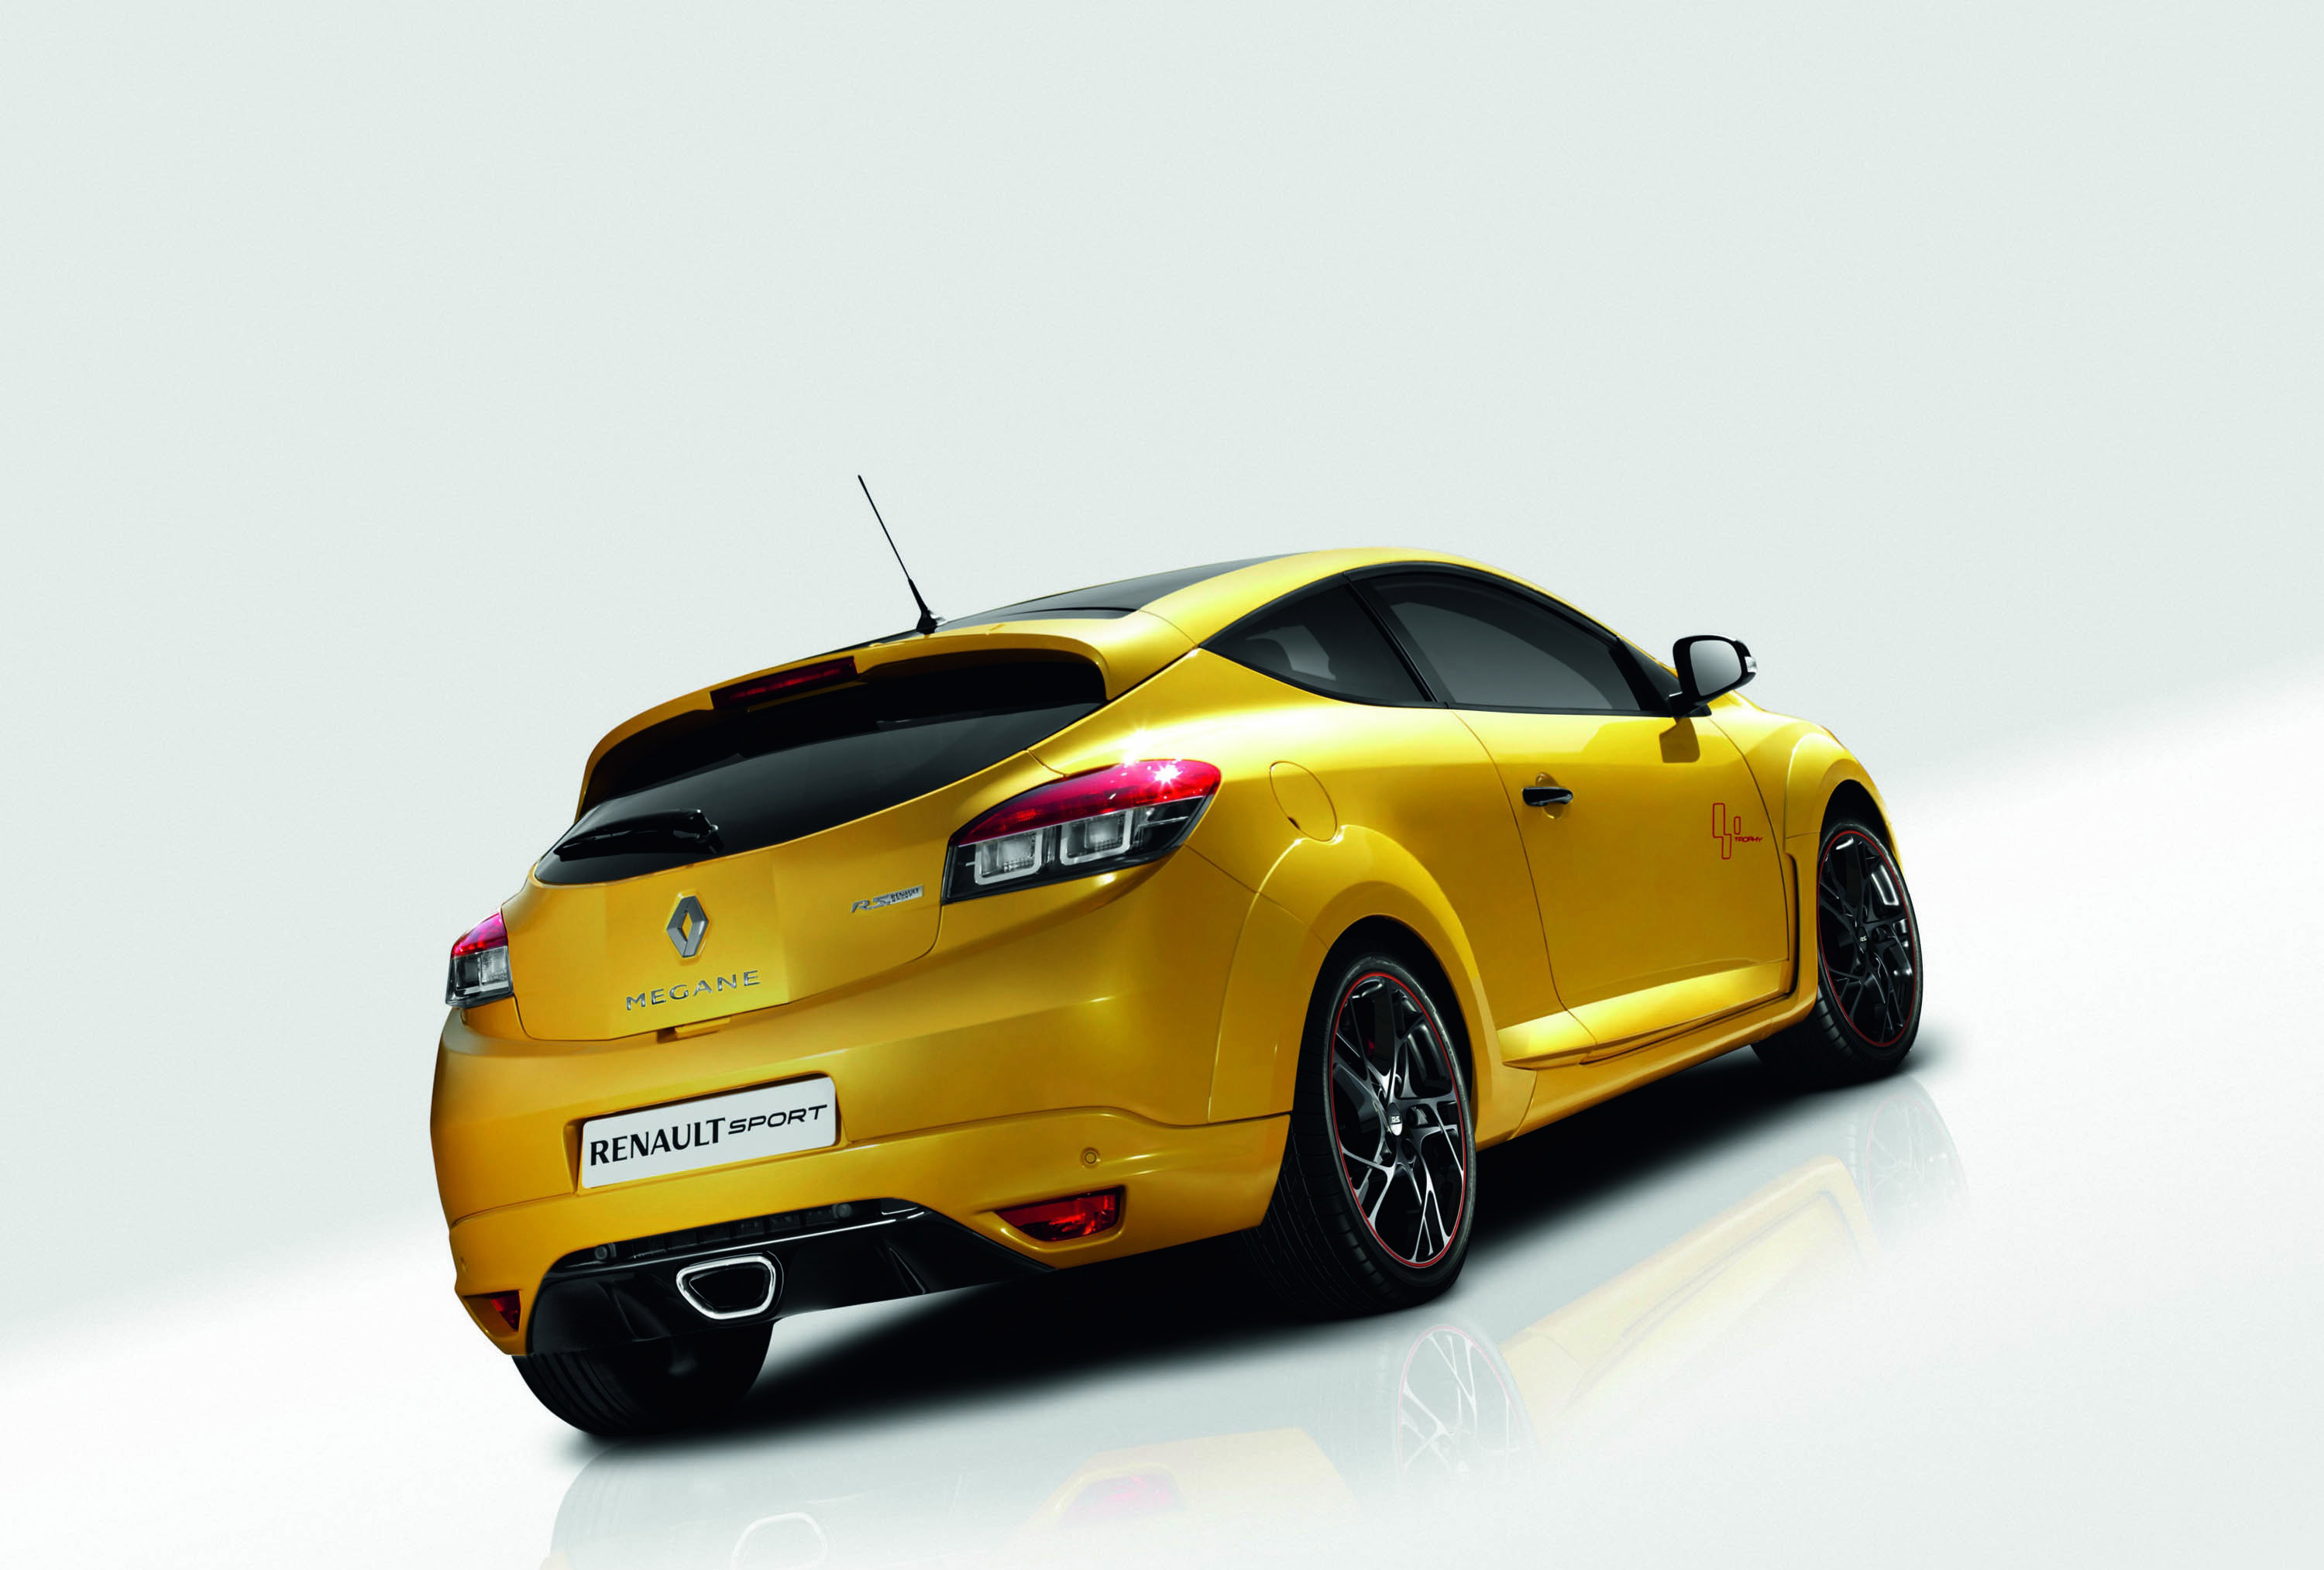 renault megane renaultsport 265 trophy. Black Bedroom Furniture Sets. Home Design Ideas